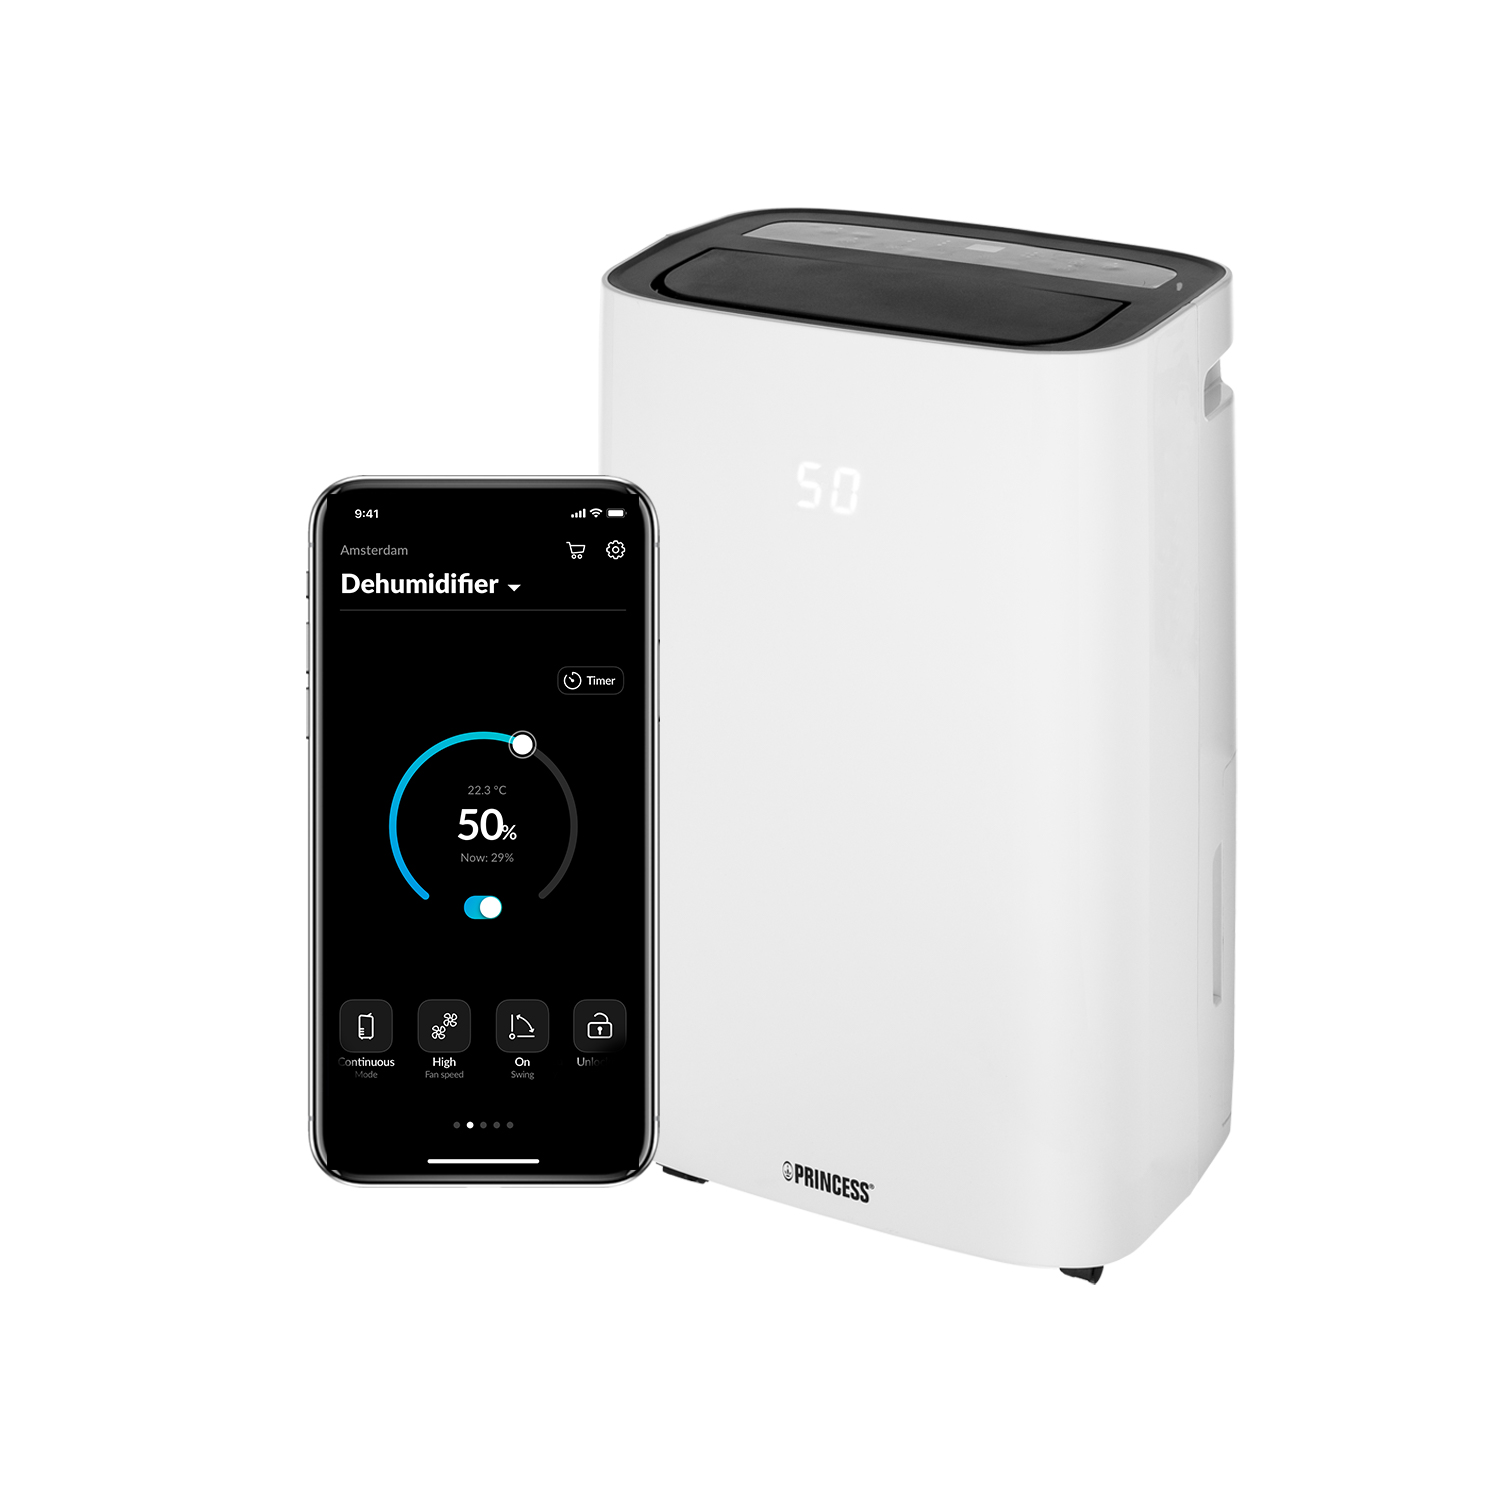 Princess 353120 Smart humidifier